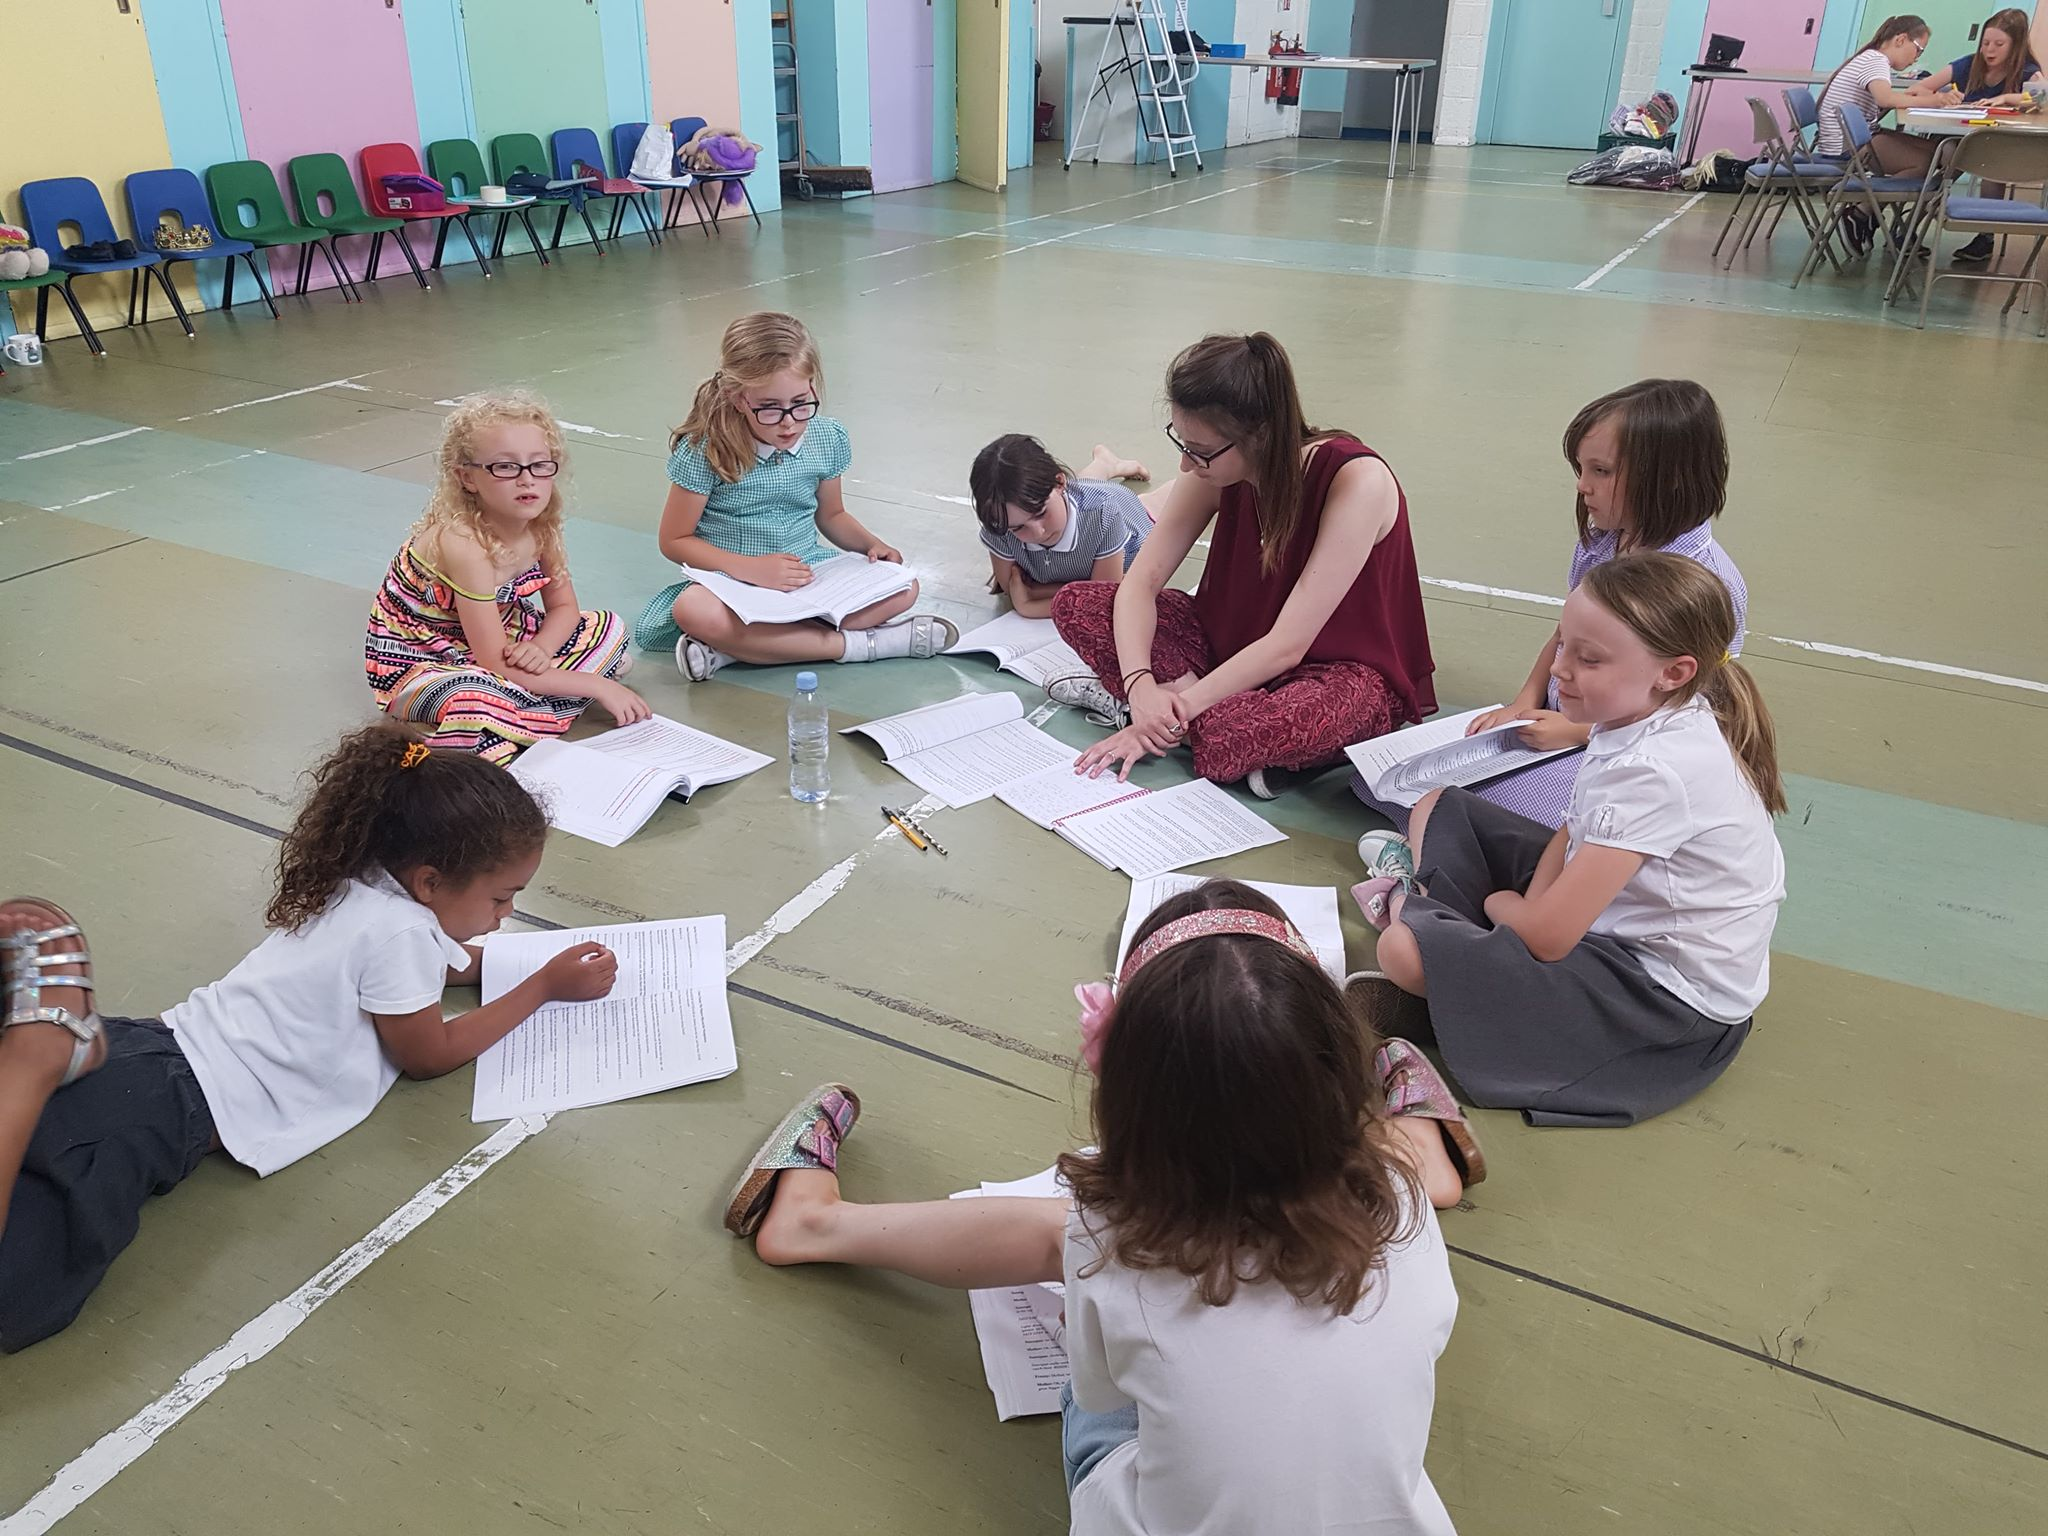 Ellie Snow working with her youth theatre group